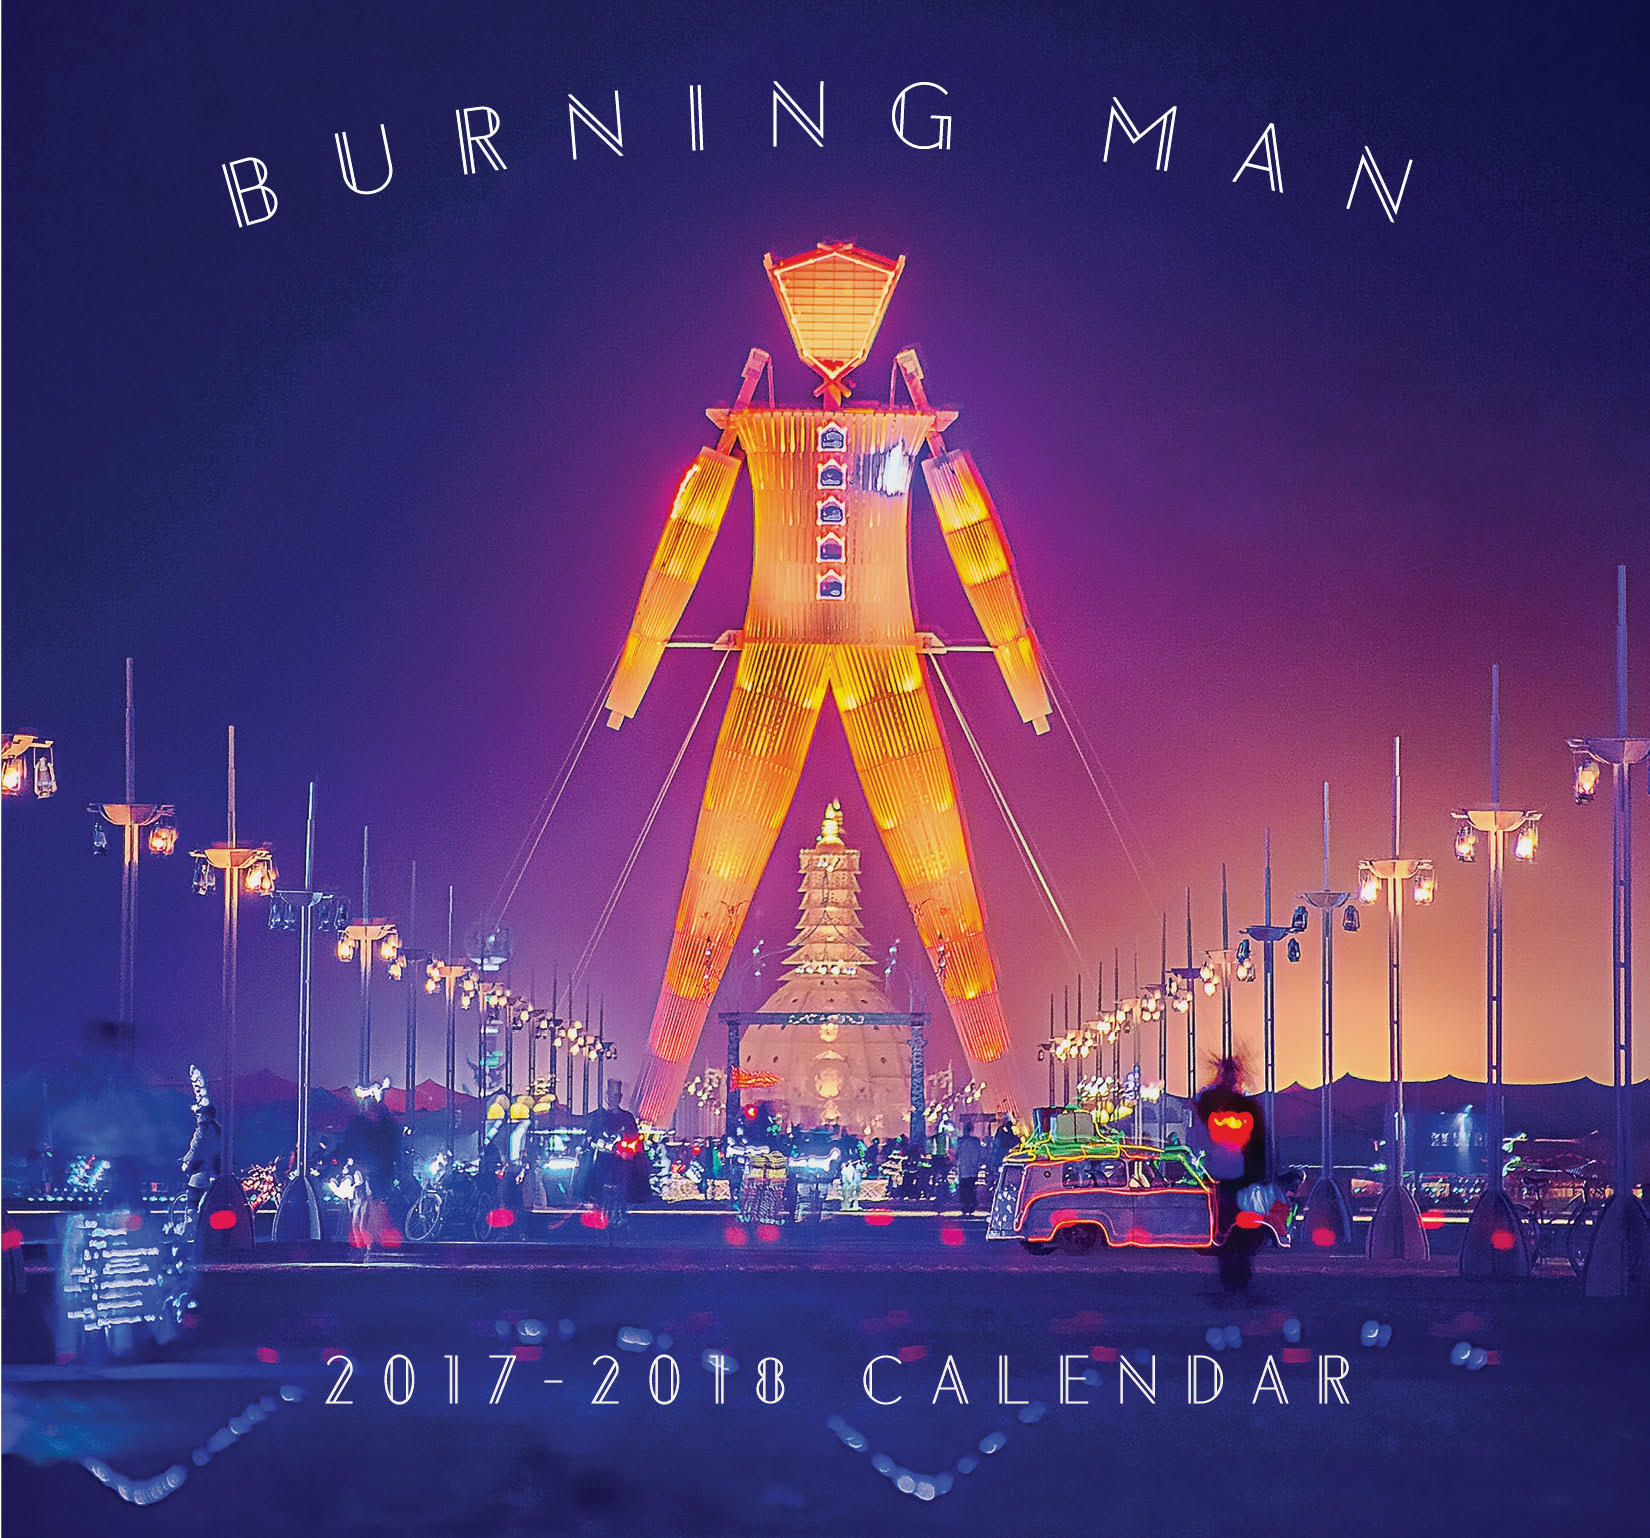 There's a semi-secret Burning Man calendar that you can (shockingly) buy